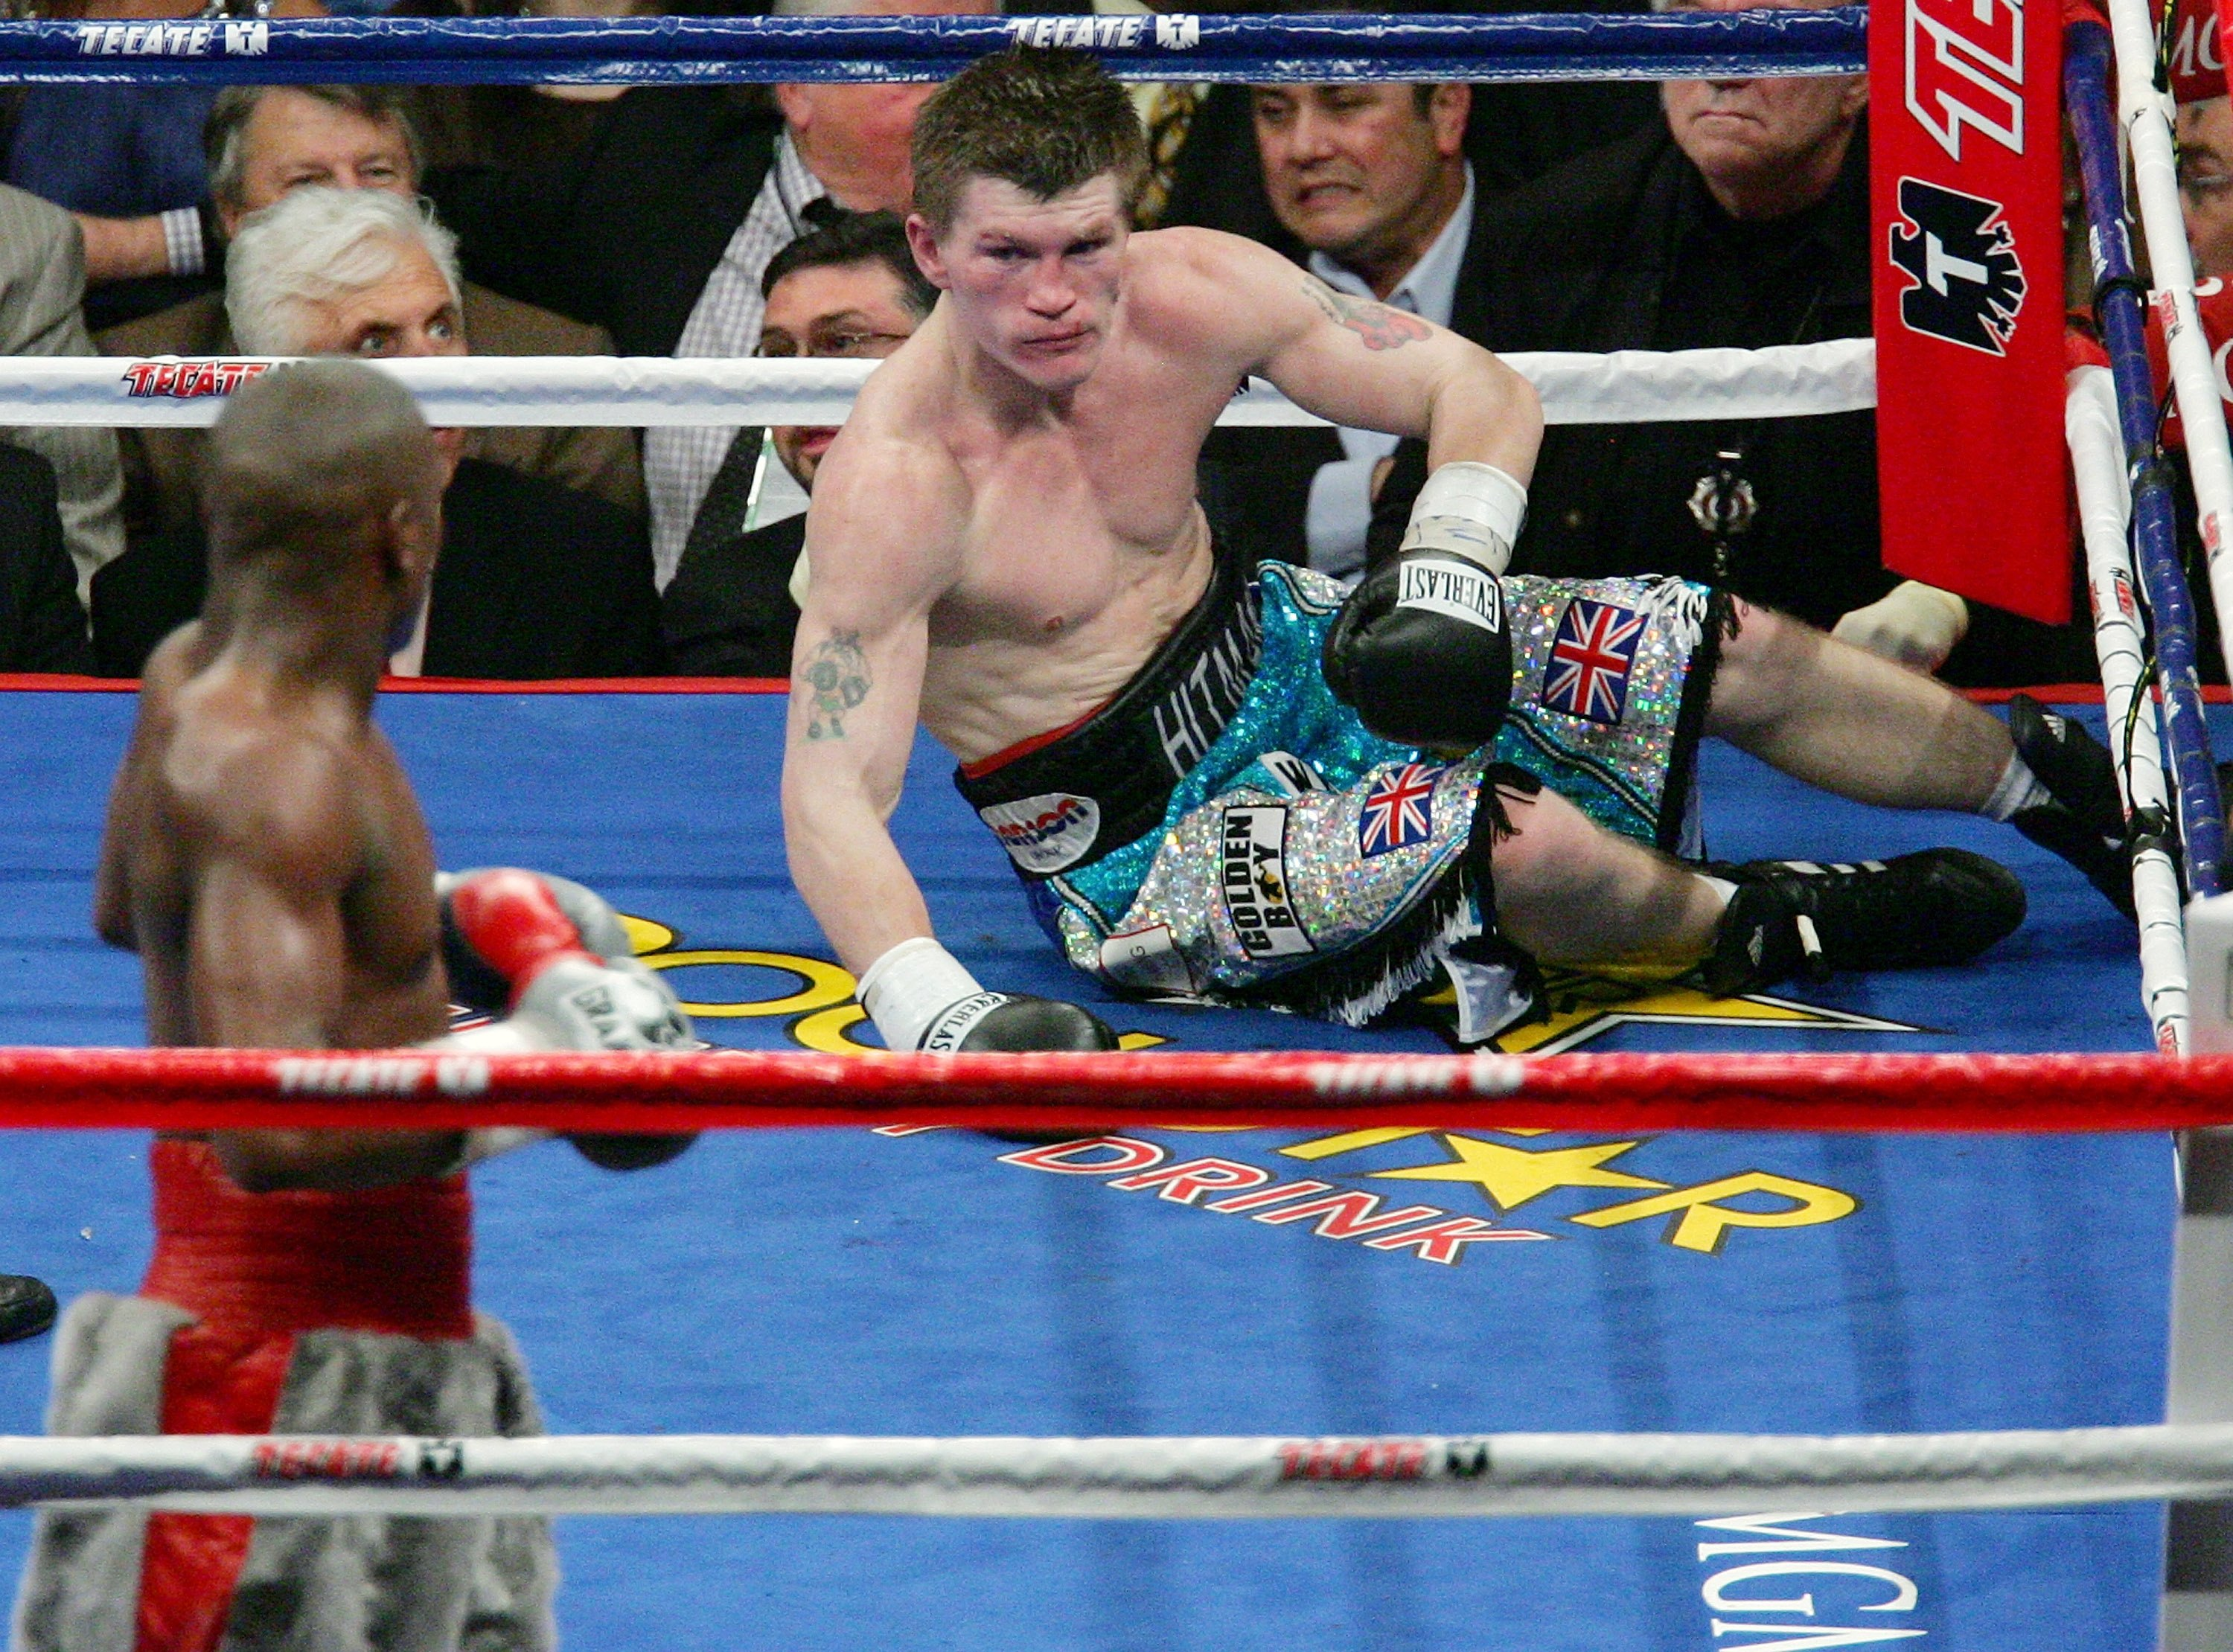 LAS VEGAS - DECEMBER 08:  Ricky Hatton is knocked down in the 10th round by Floyd Mayweather Jr. during their WBC world welterweight championship fight at the MGM Grand Garden Arena on December 8, 2007 in Las Vegas, Nevada.  (Photo by Ethan Miller/Getty I